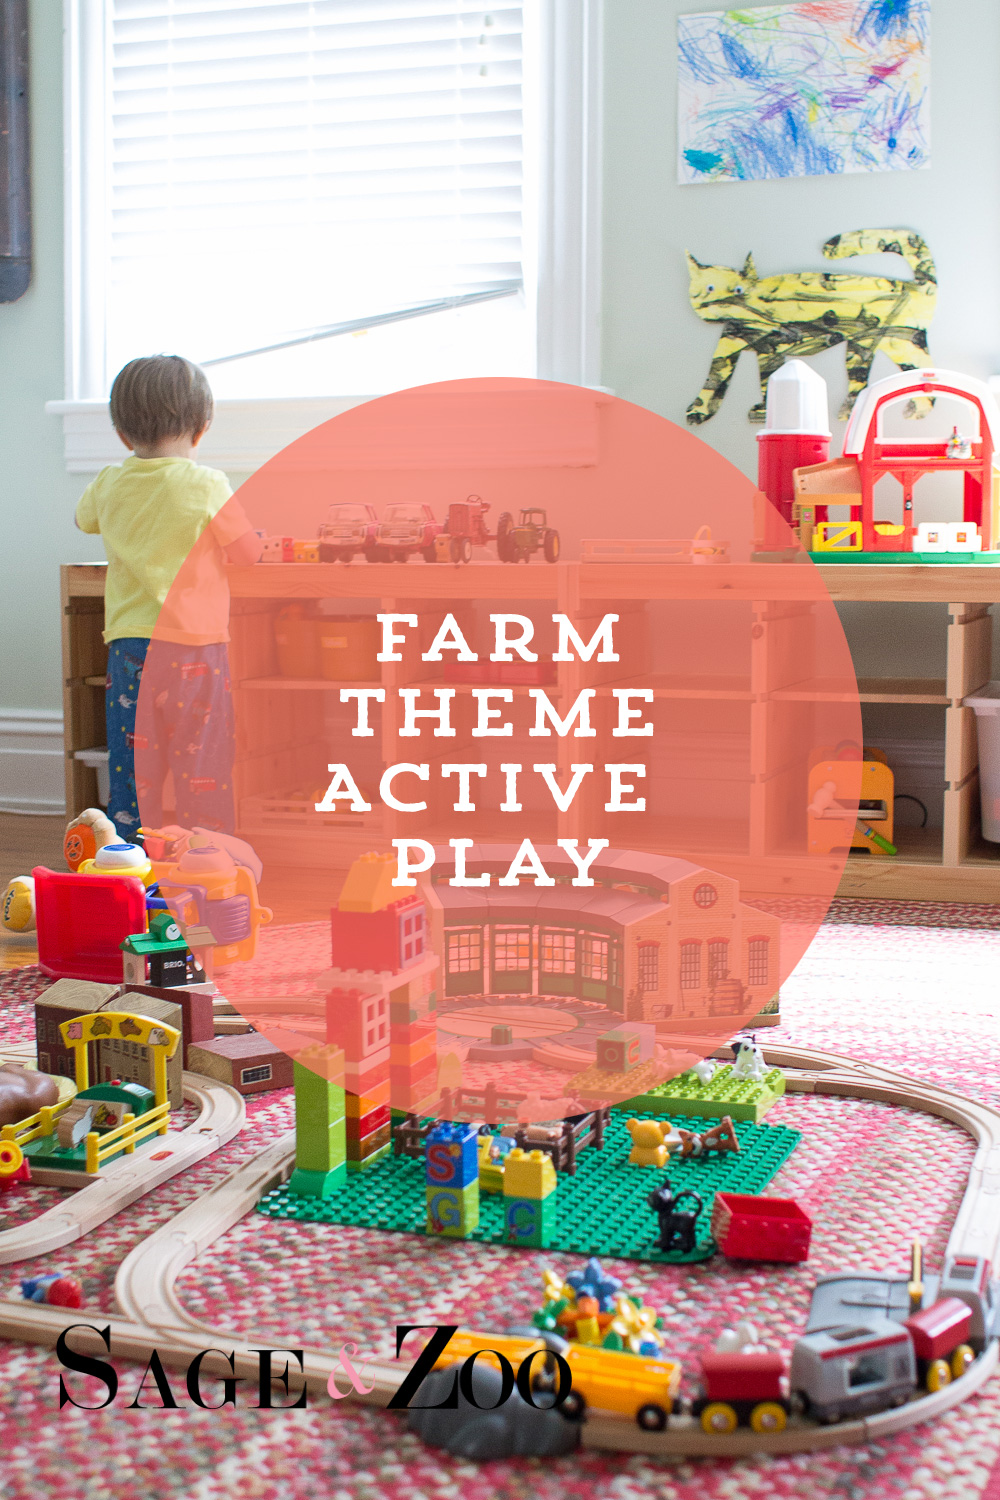 Farm-Themed-Play-Intro